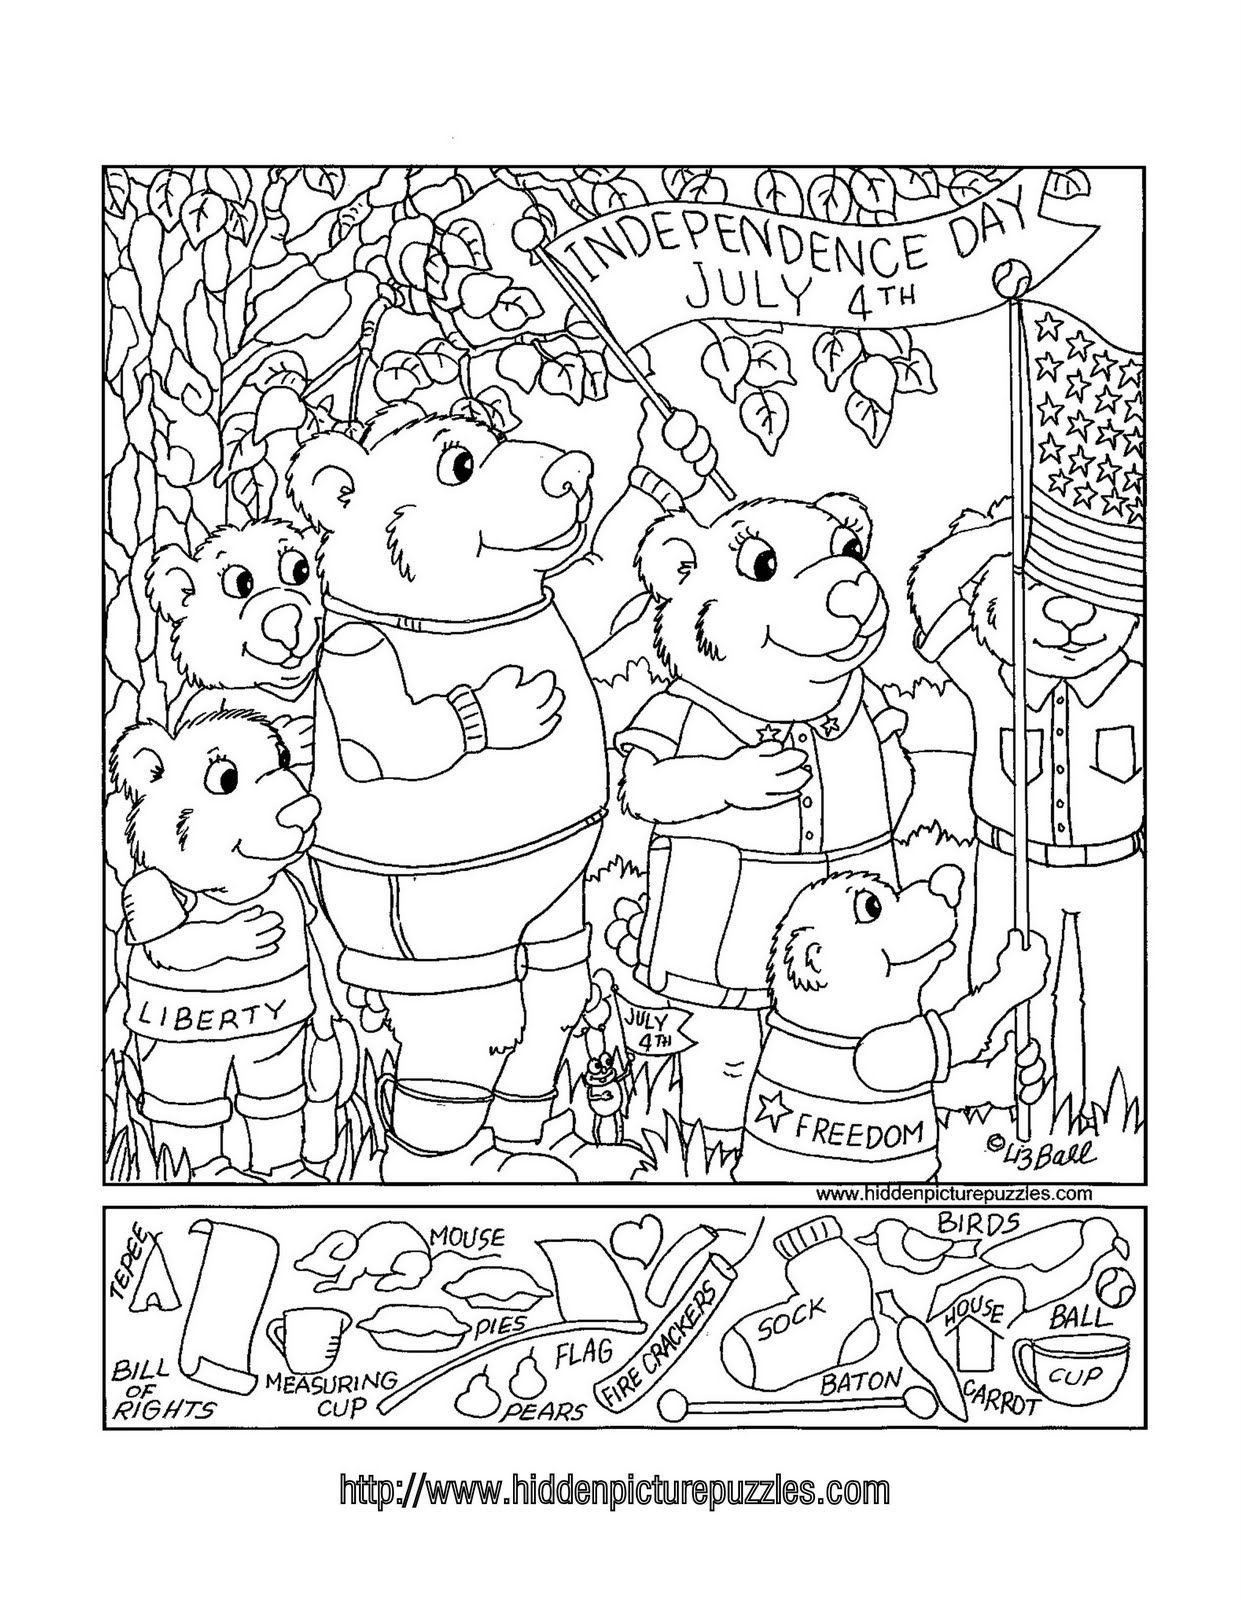 Coloring pages for dots for 4 of july - Hidden Pictures Publishing July 4 Hidden Picture Puzzle By Liz Ball